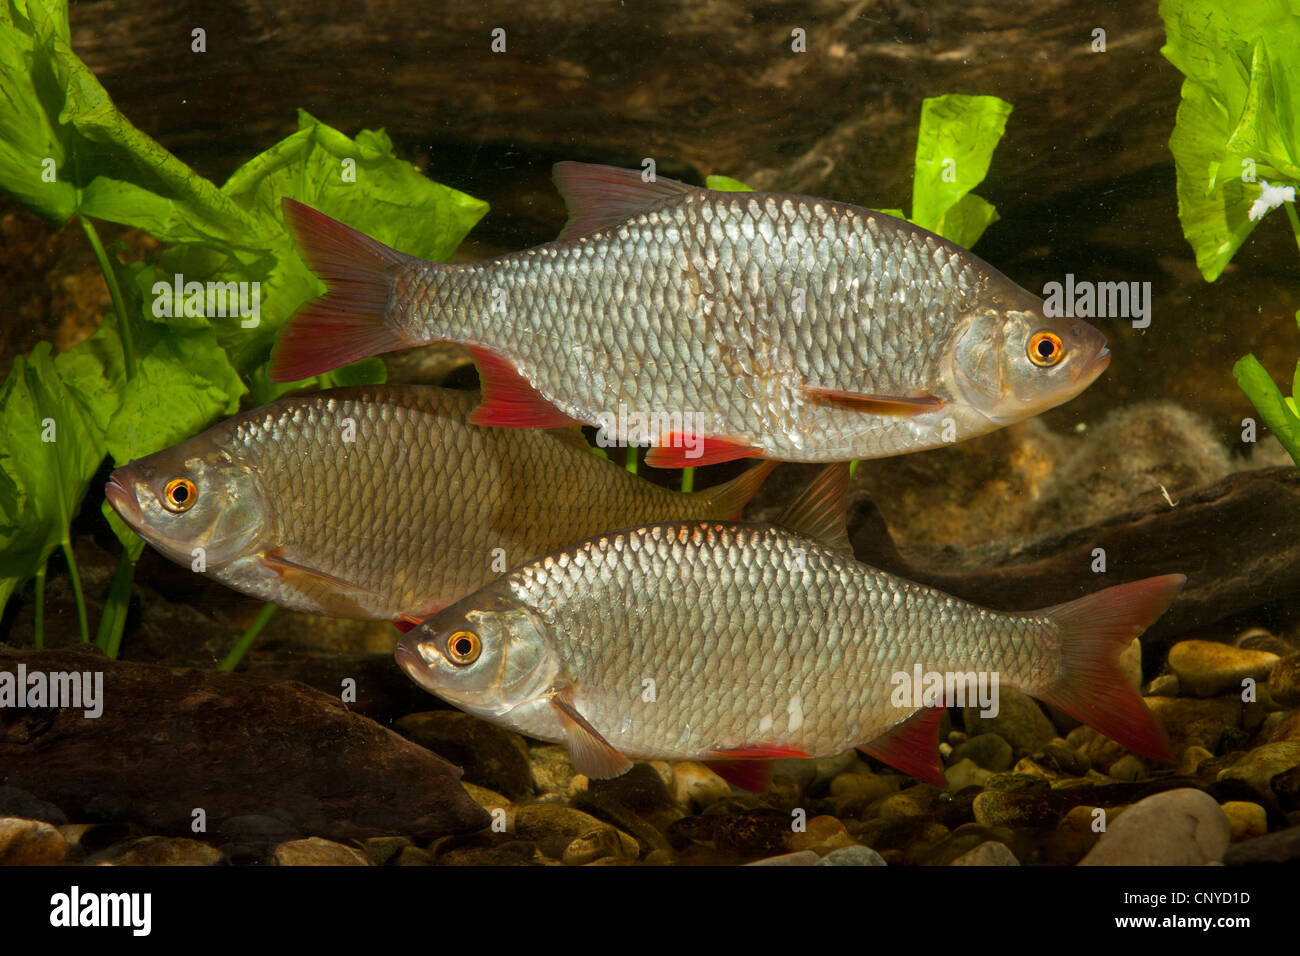 rudd (Scardinius erythrophthalmus), three fishes at the pebble ground of a water - Stock Image